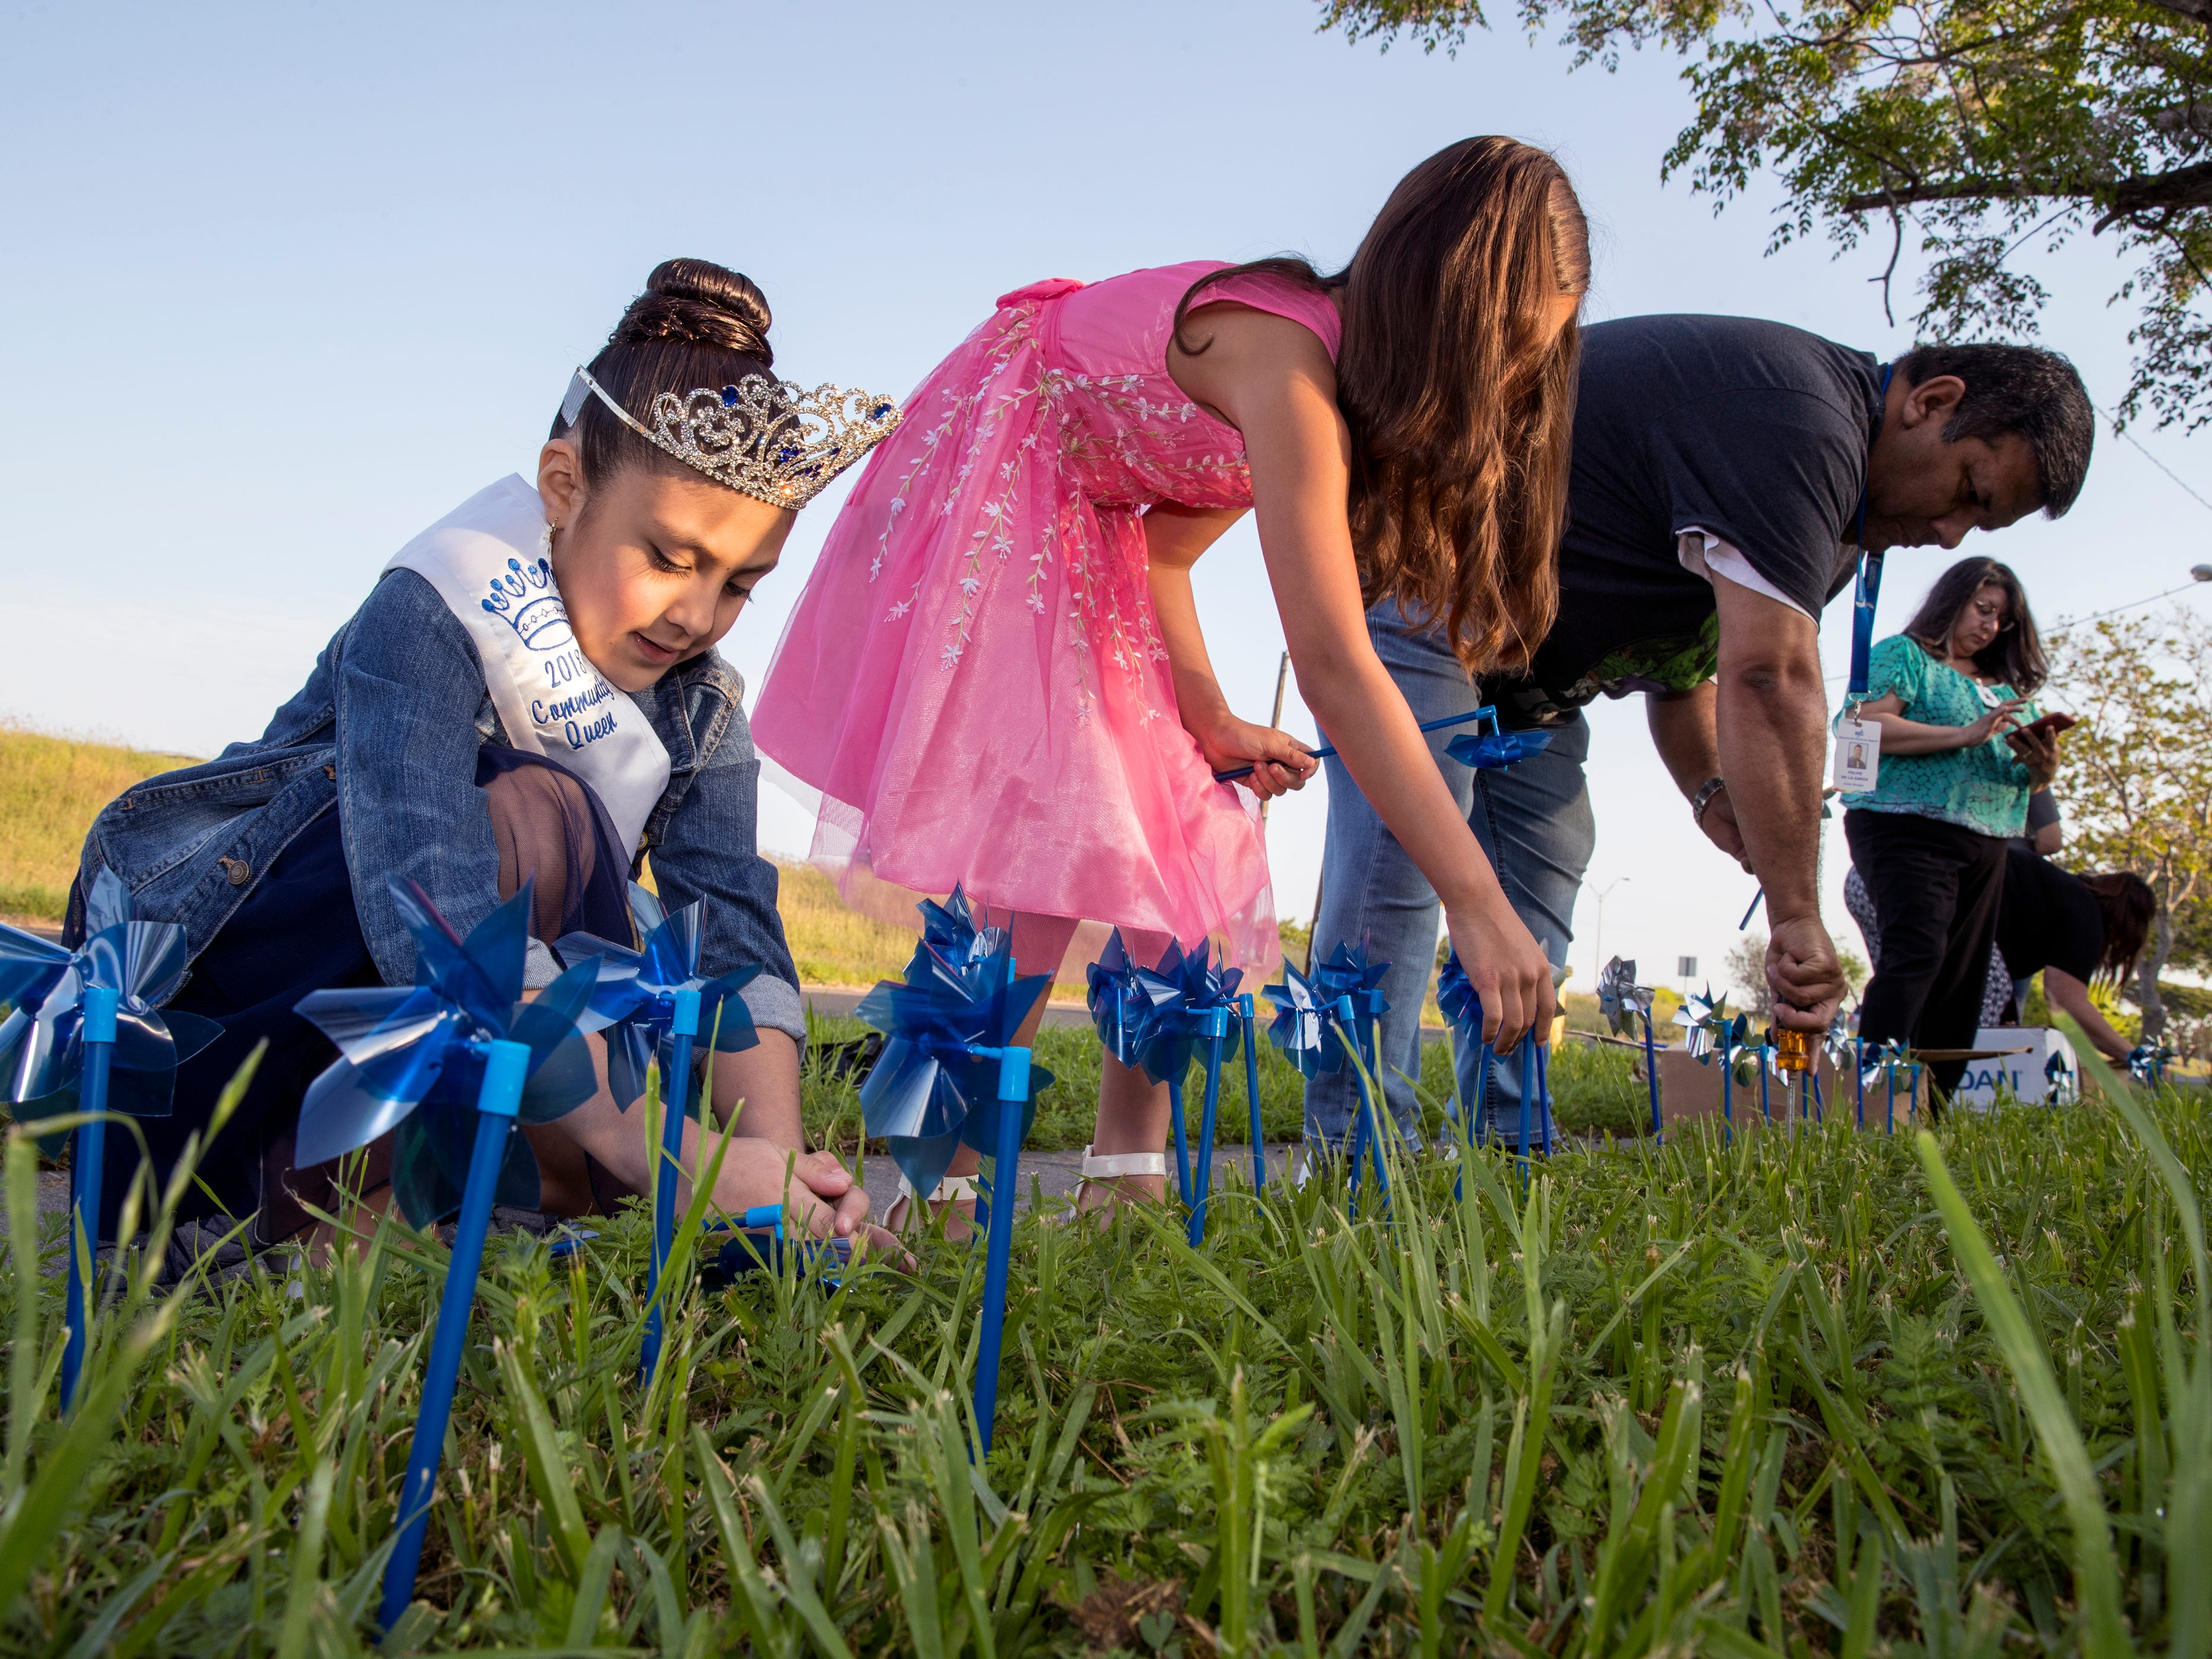 Salina Ramirez (left), 8, and Anesa Hernandez, 9, help install pinwheels in front of CASA of the Coastal Bend on Friday, March 29, 2019. The 1,066 pinwheels represent a child from the Coastal Bend who was in foster care last year and will stay up throughout the month of April, which is Child Abuse Awareness Month.